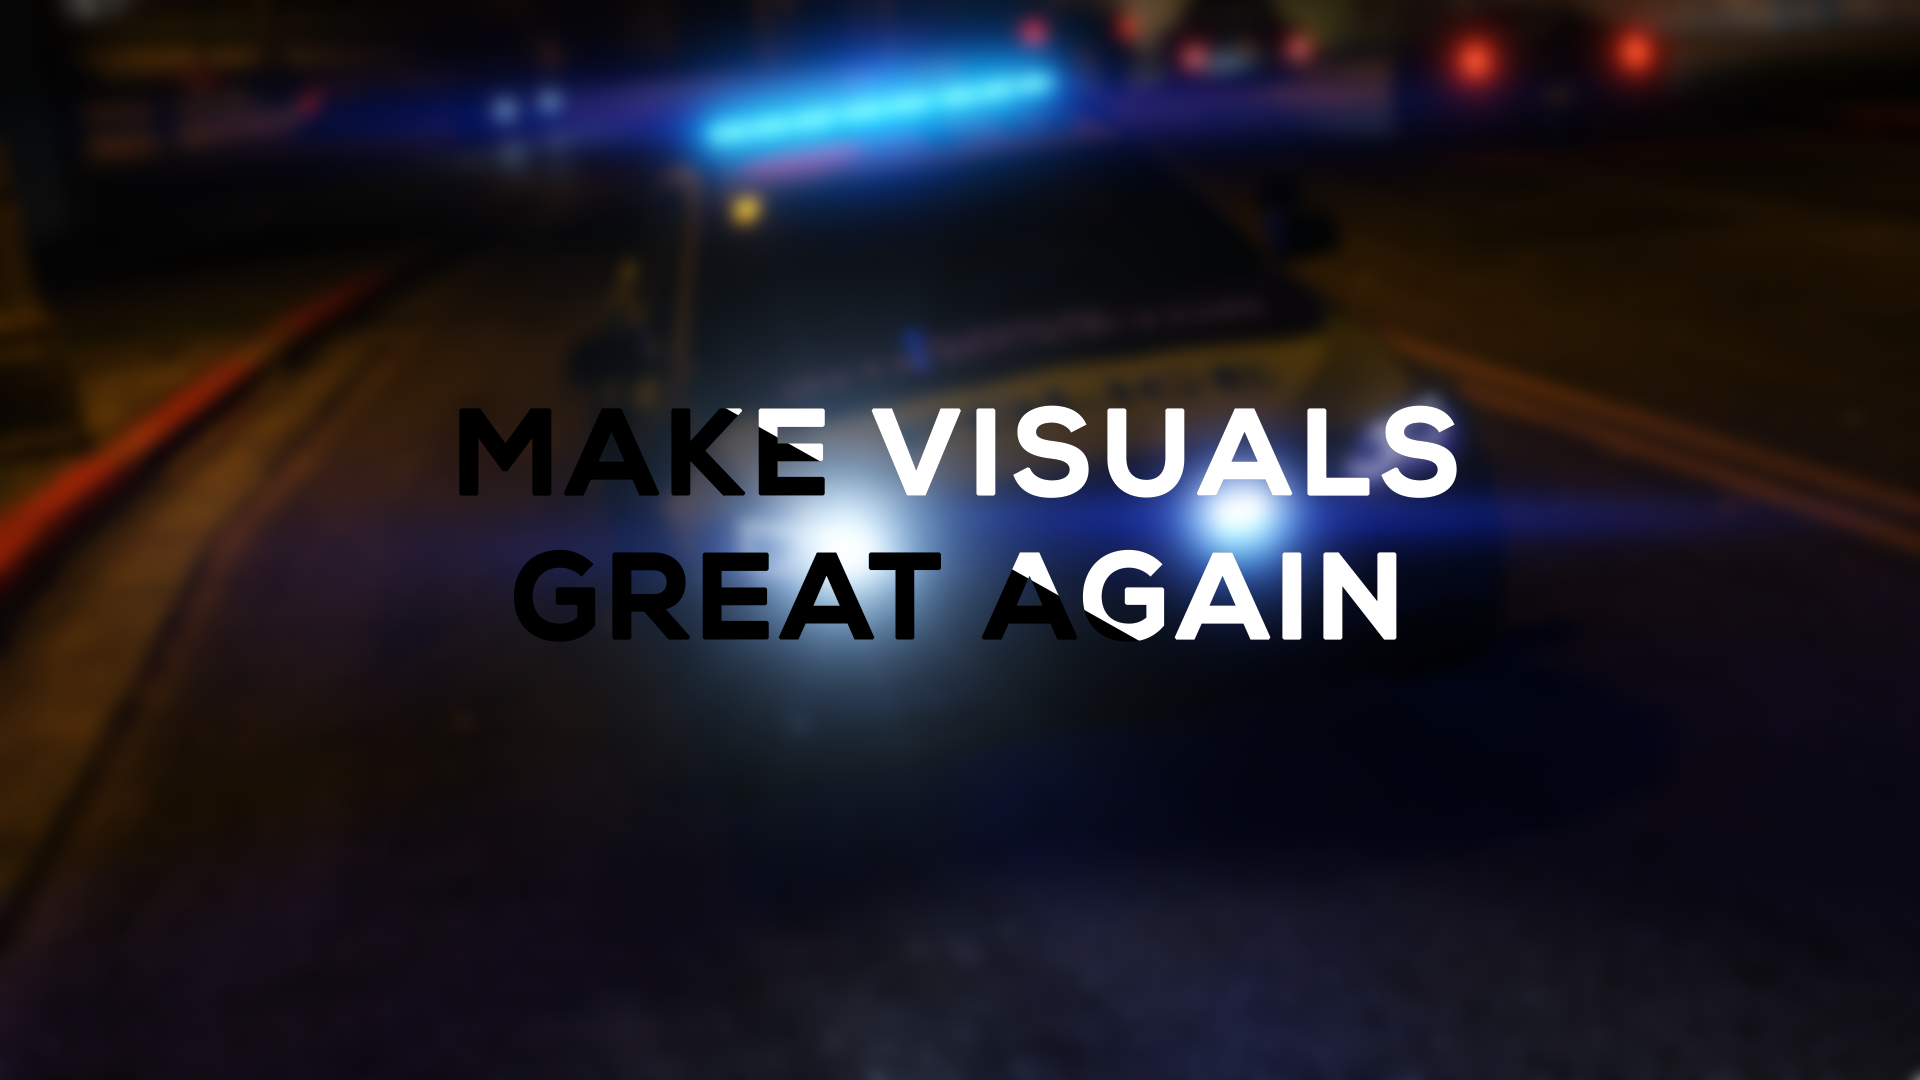 Make Visuals Great Again - GTA5